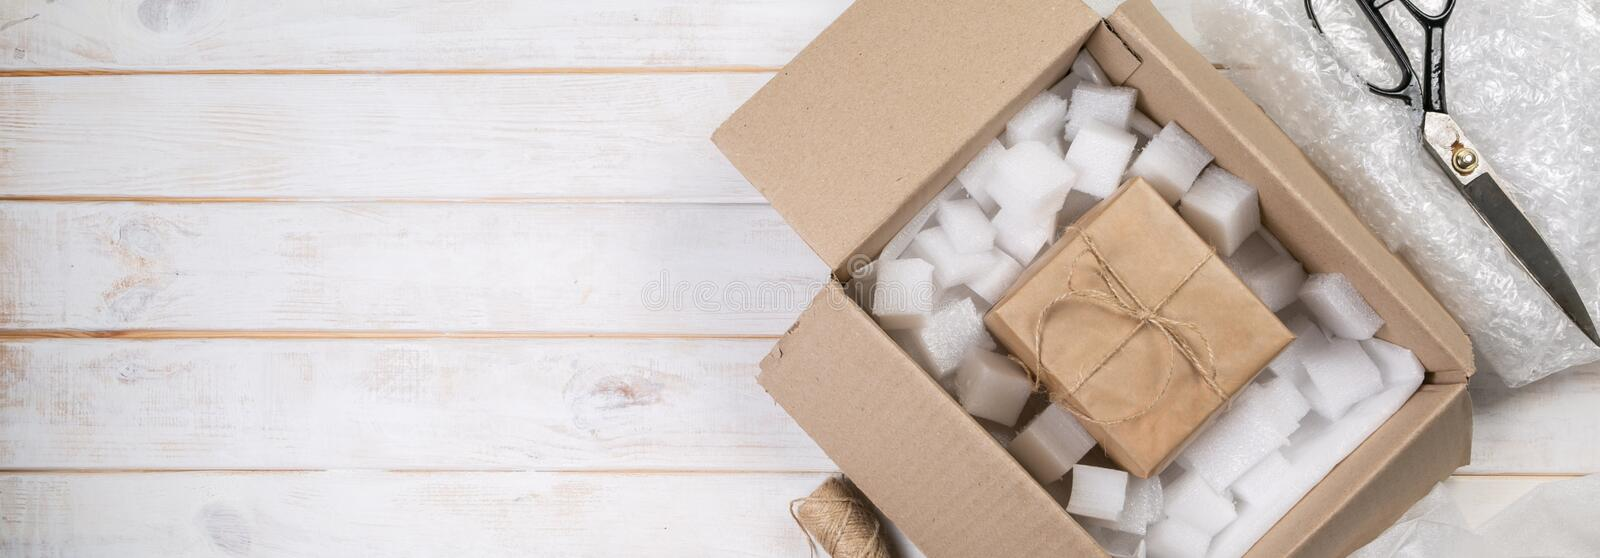 Packing products for delivery, shipping service royalty free stock photo